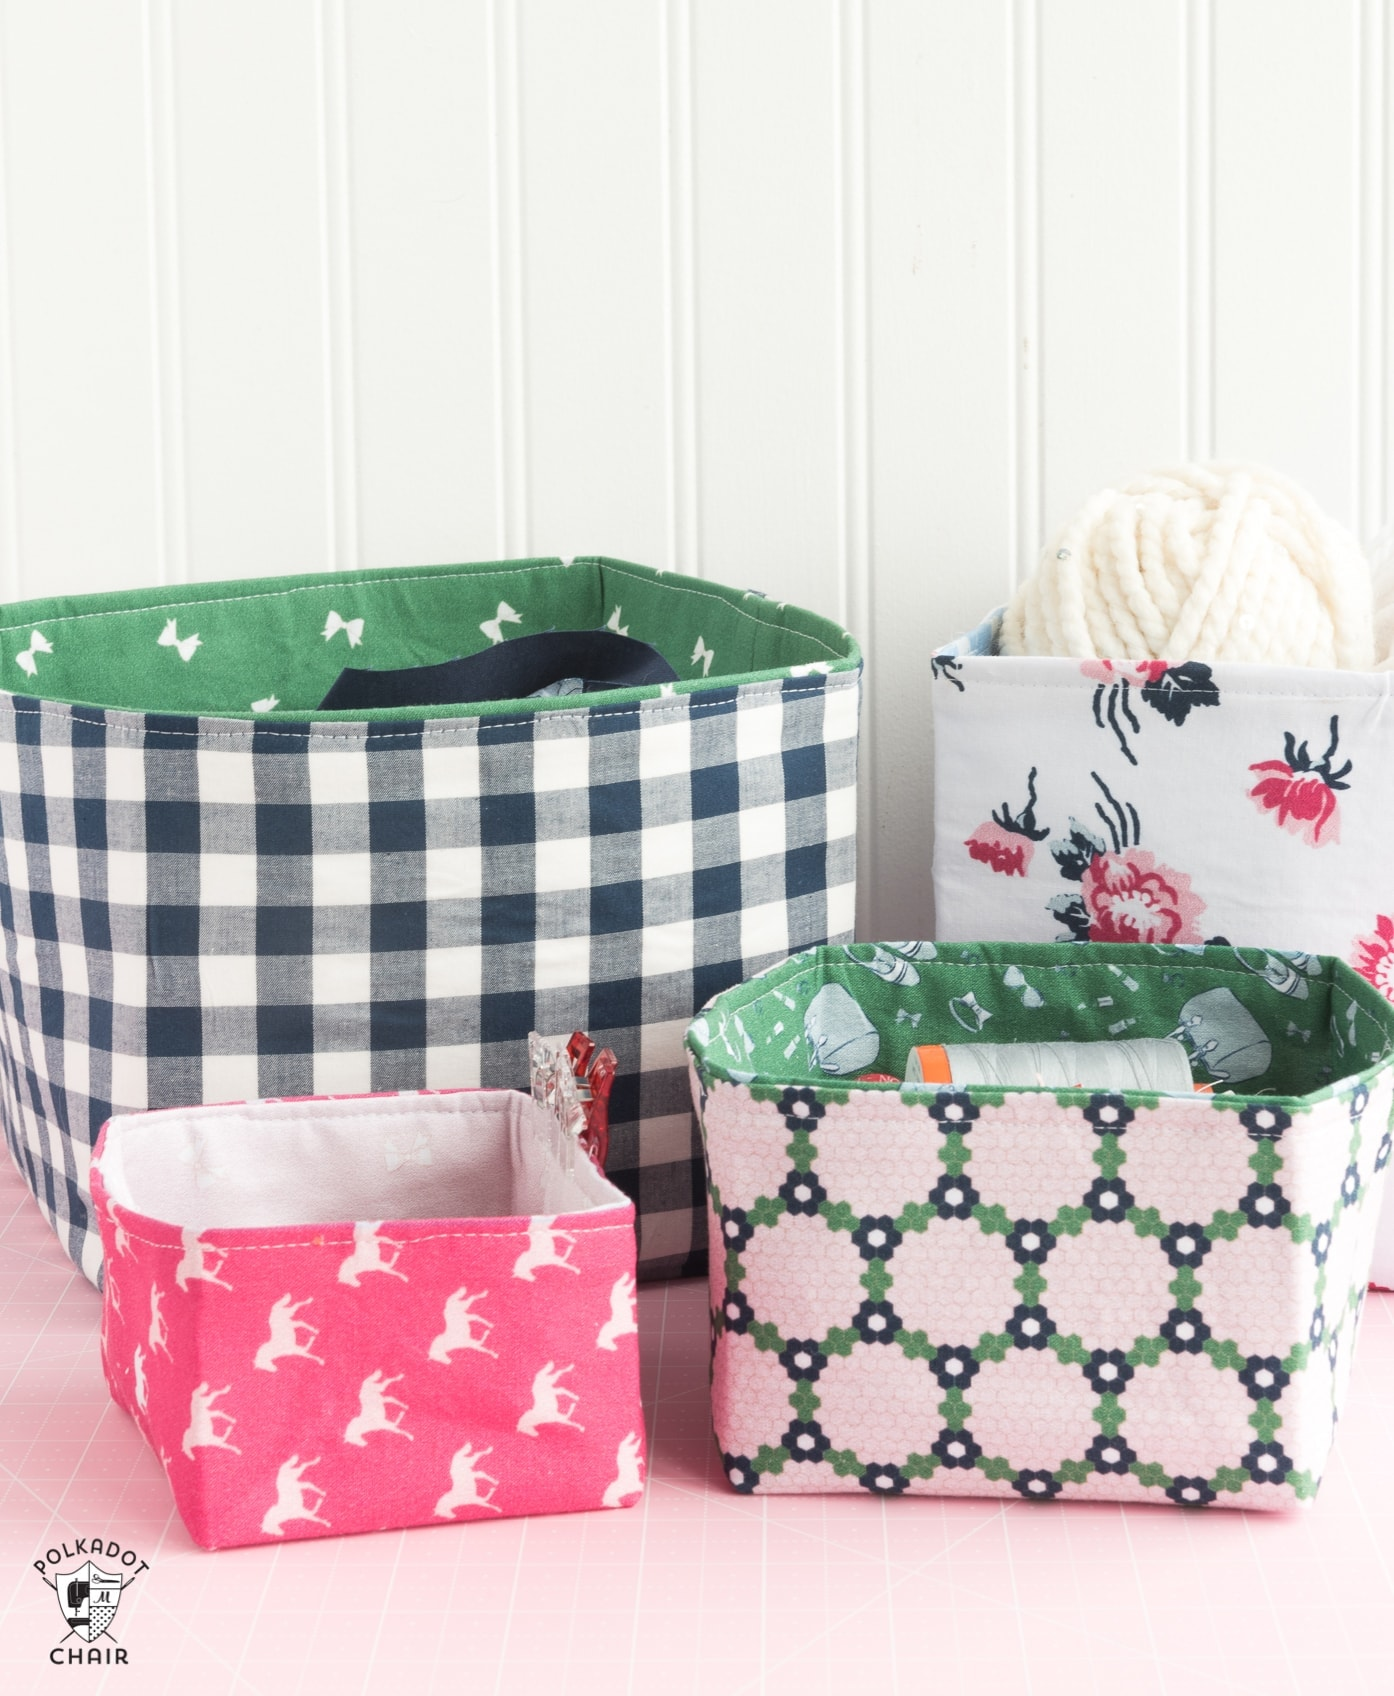 Free Sewing Pattern for Fabric Baskets designed to work with the Cricut Maker. Fabric Basket Sewing Pattern that is easy to make and great for a beginning seamstress. #CricutMade #CricutMaker #CricutProject #FabricBasket #SewingPattern #freesewingpattern #fabricbasketDIY